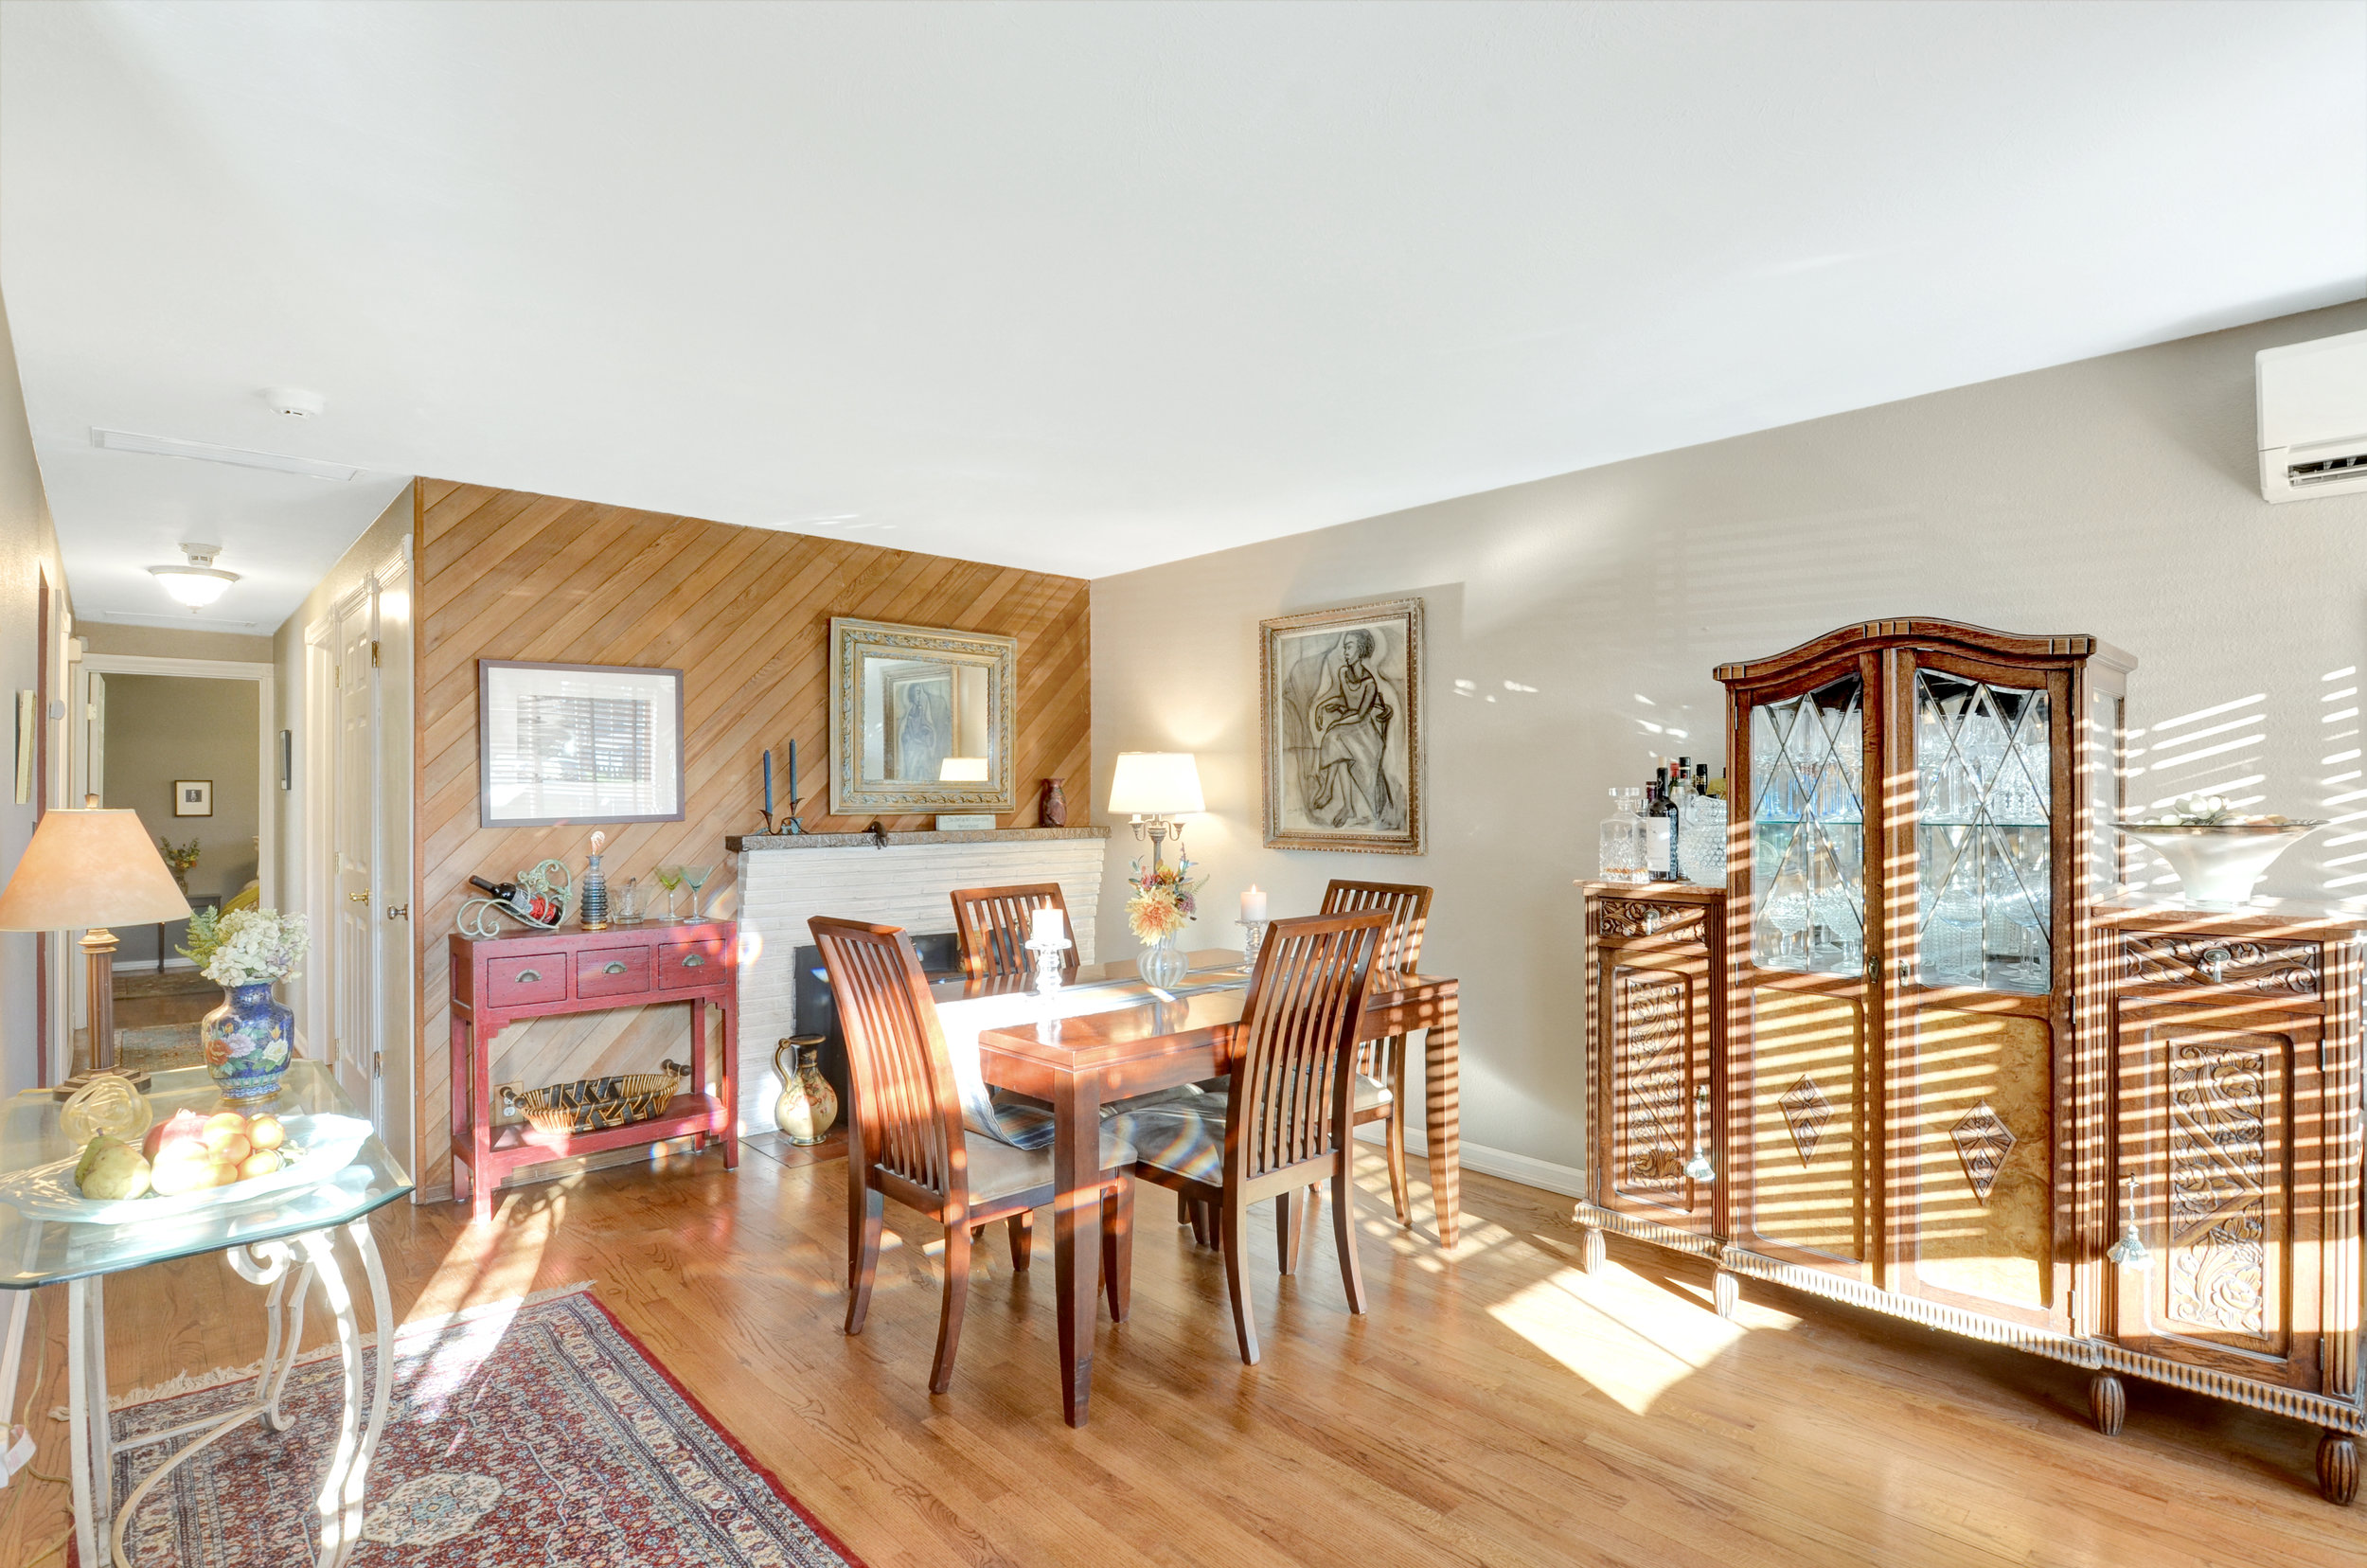 Another view of the living-dining area with its paneled wall, fireplace, and lovely light.